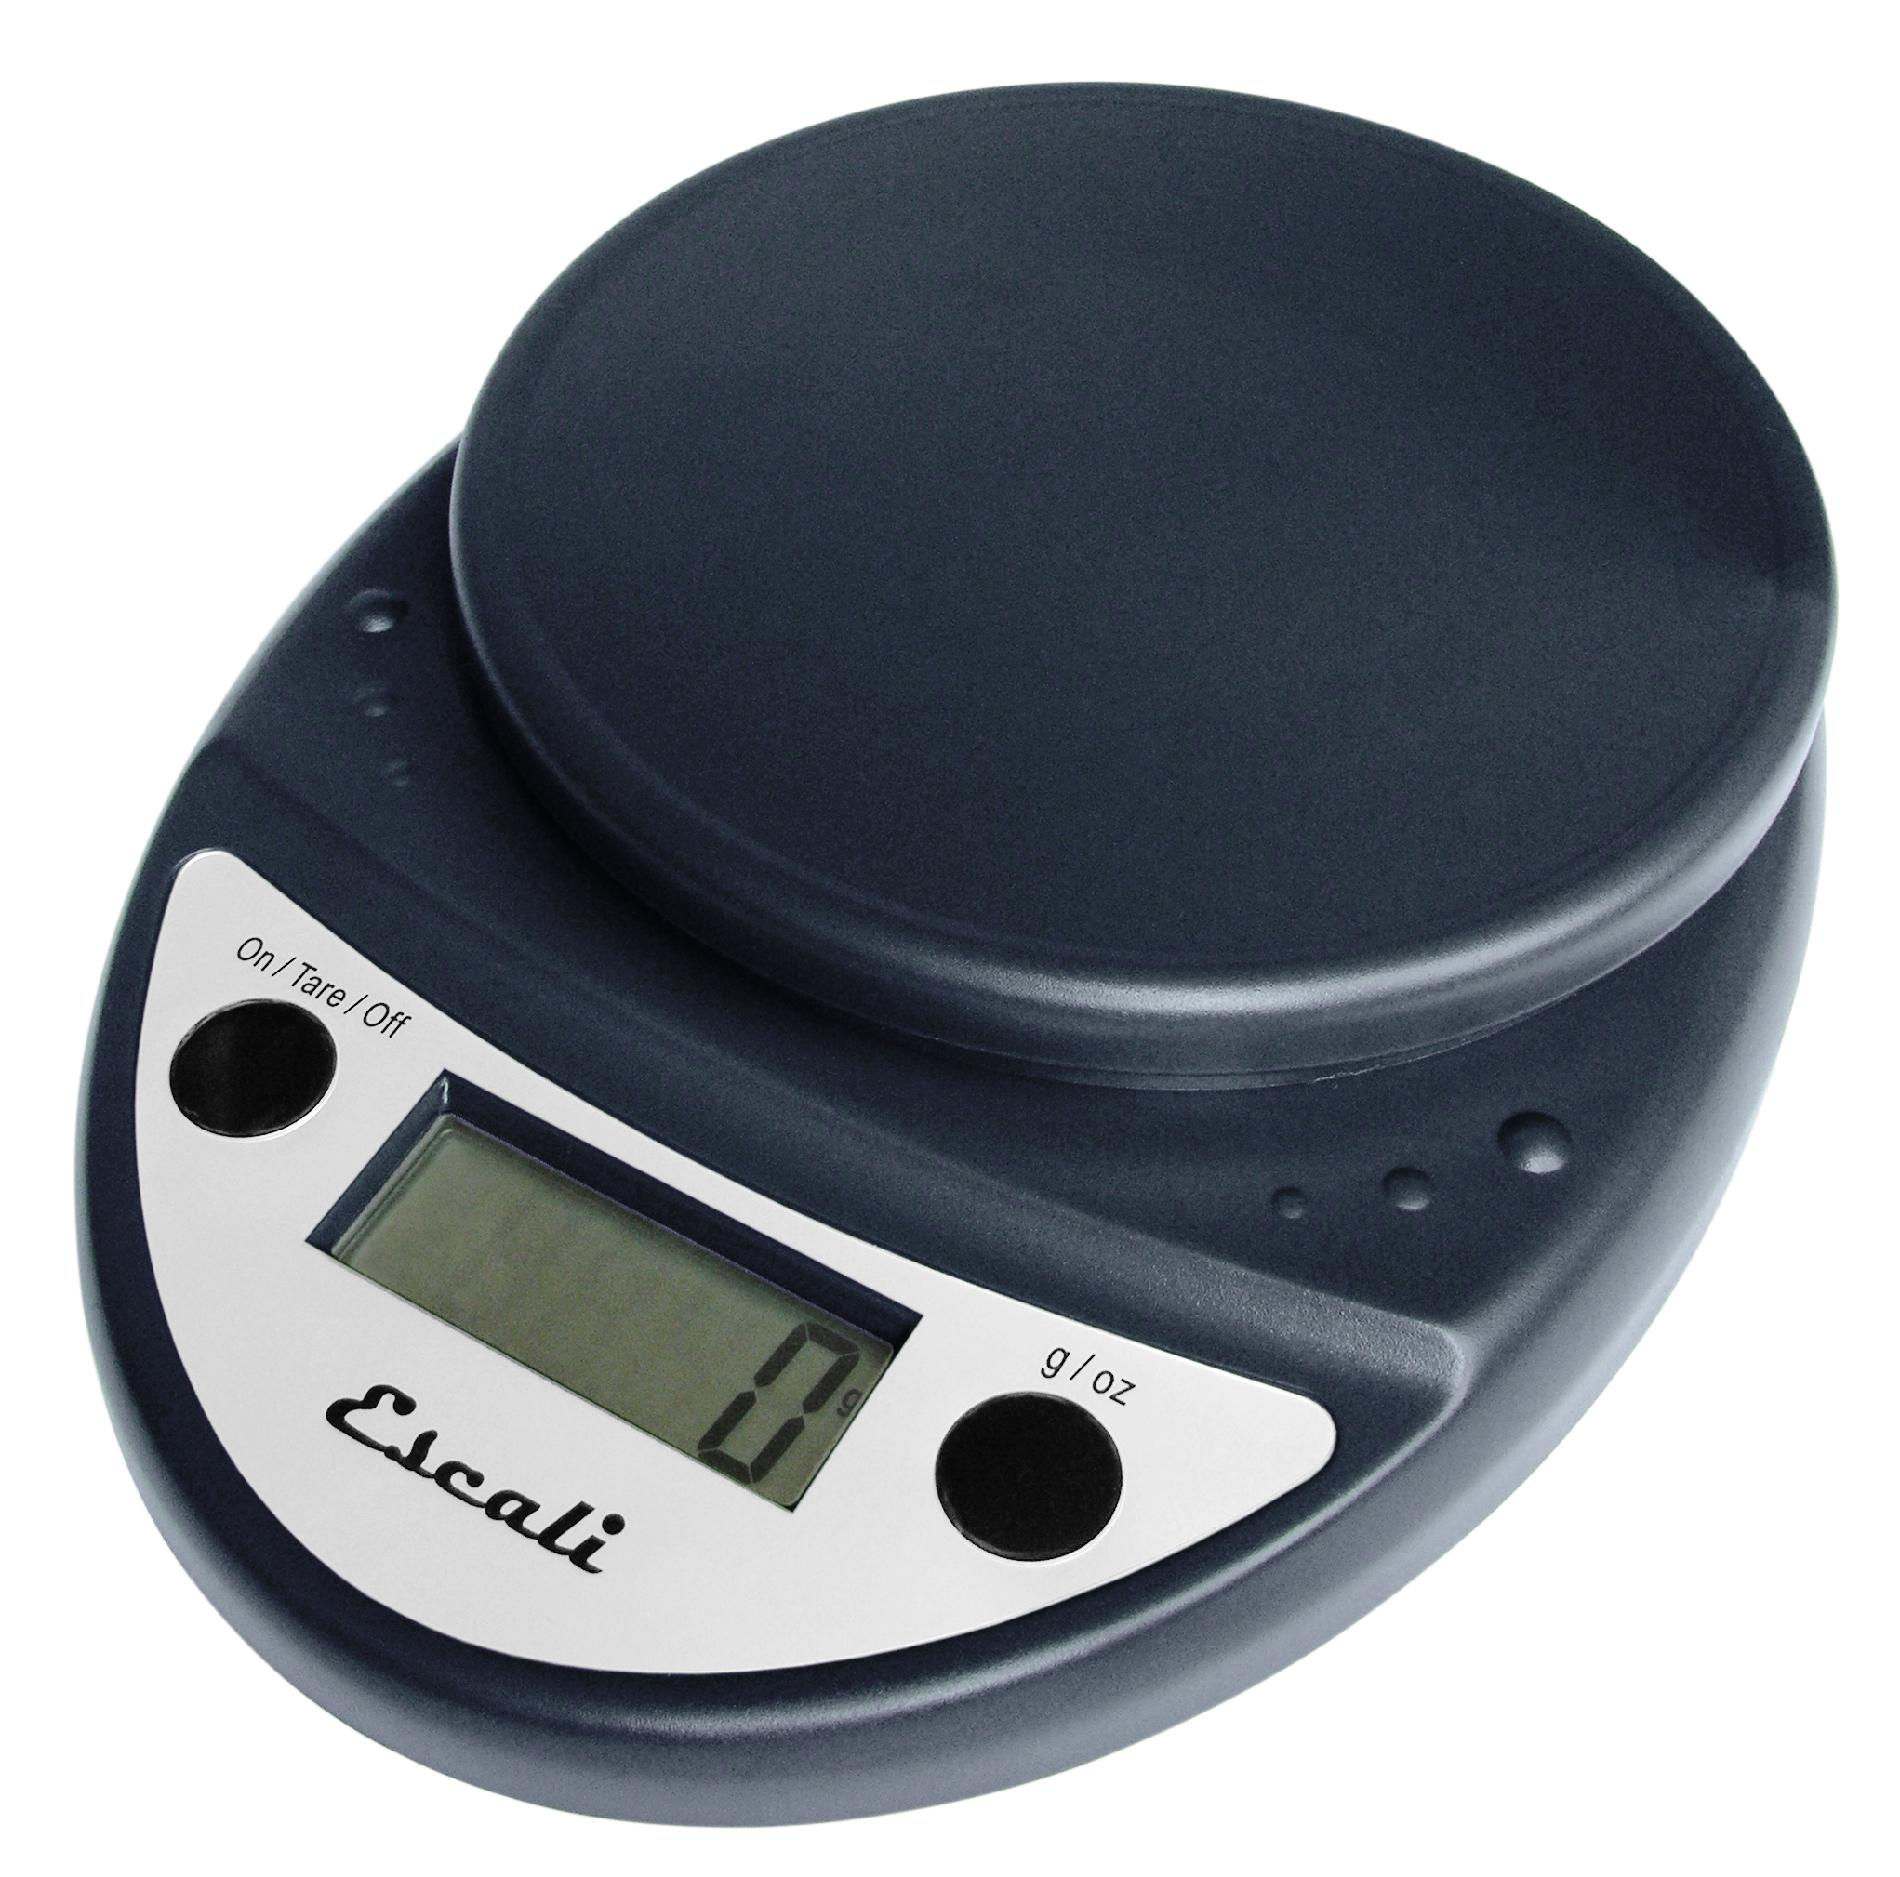 Escali Primo Professional NSF Approved Digital Scale, 11 Lb / 5 Kg, Black